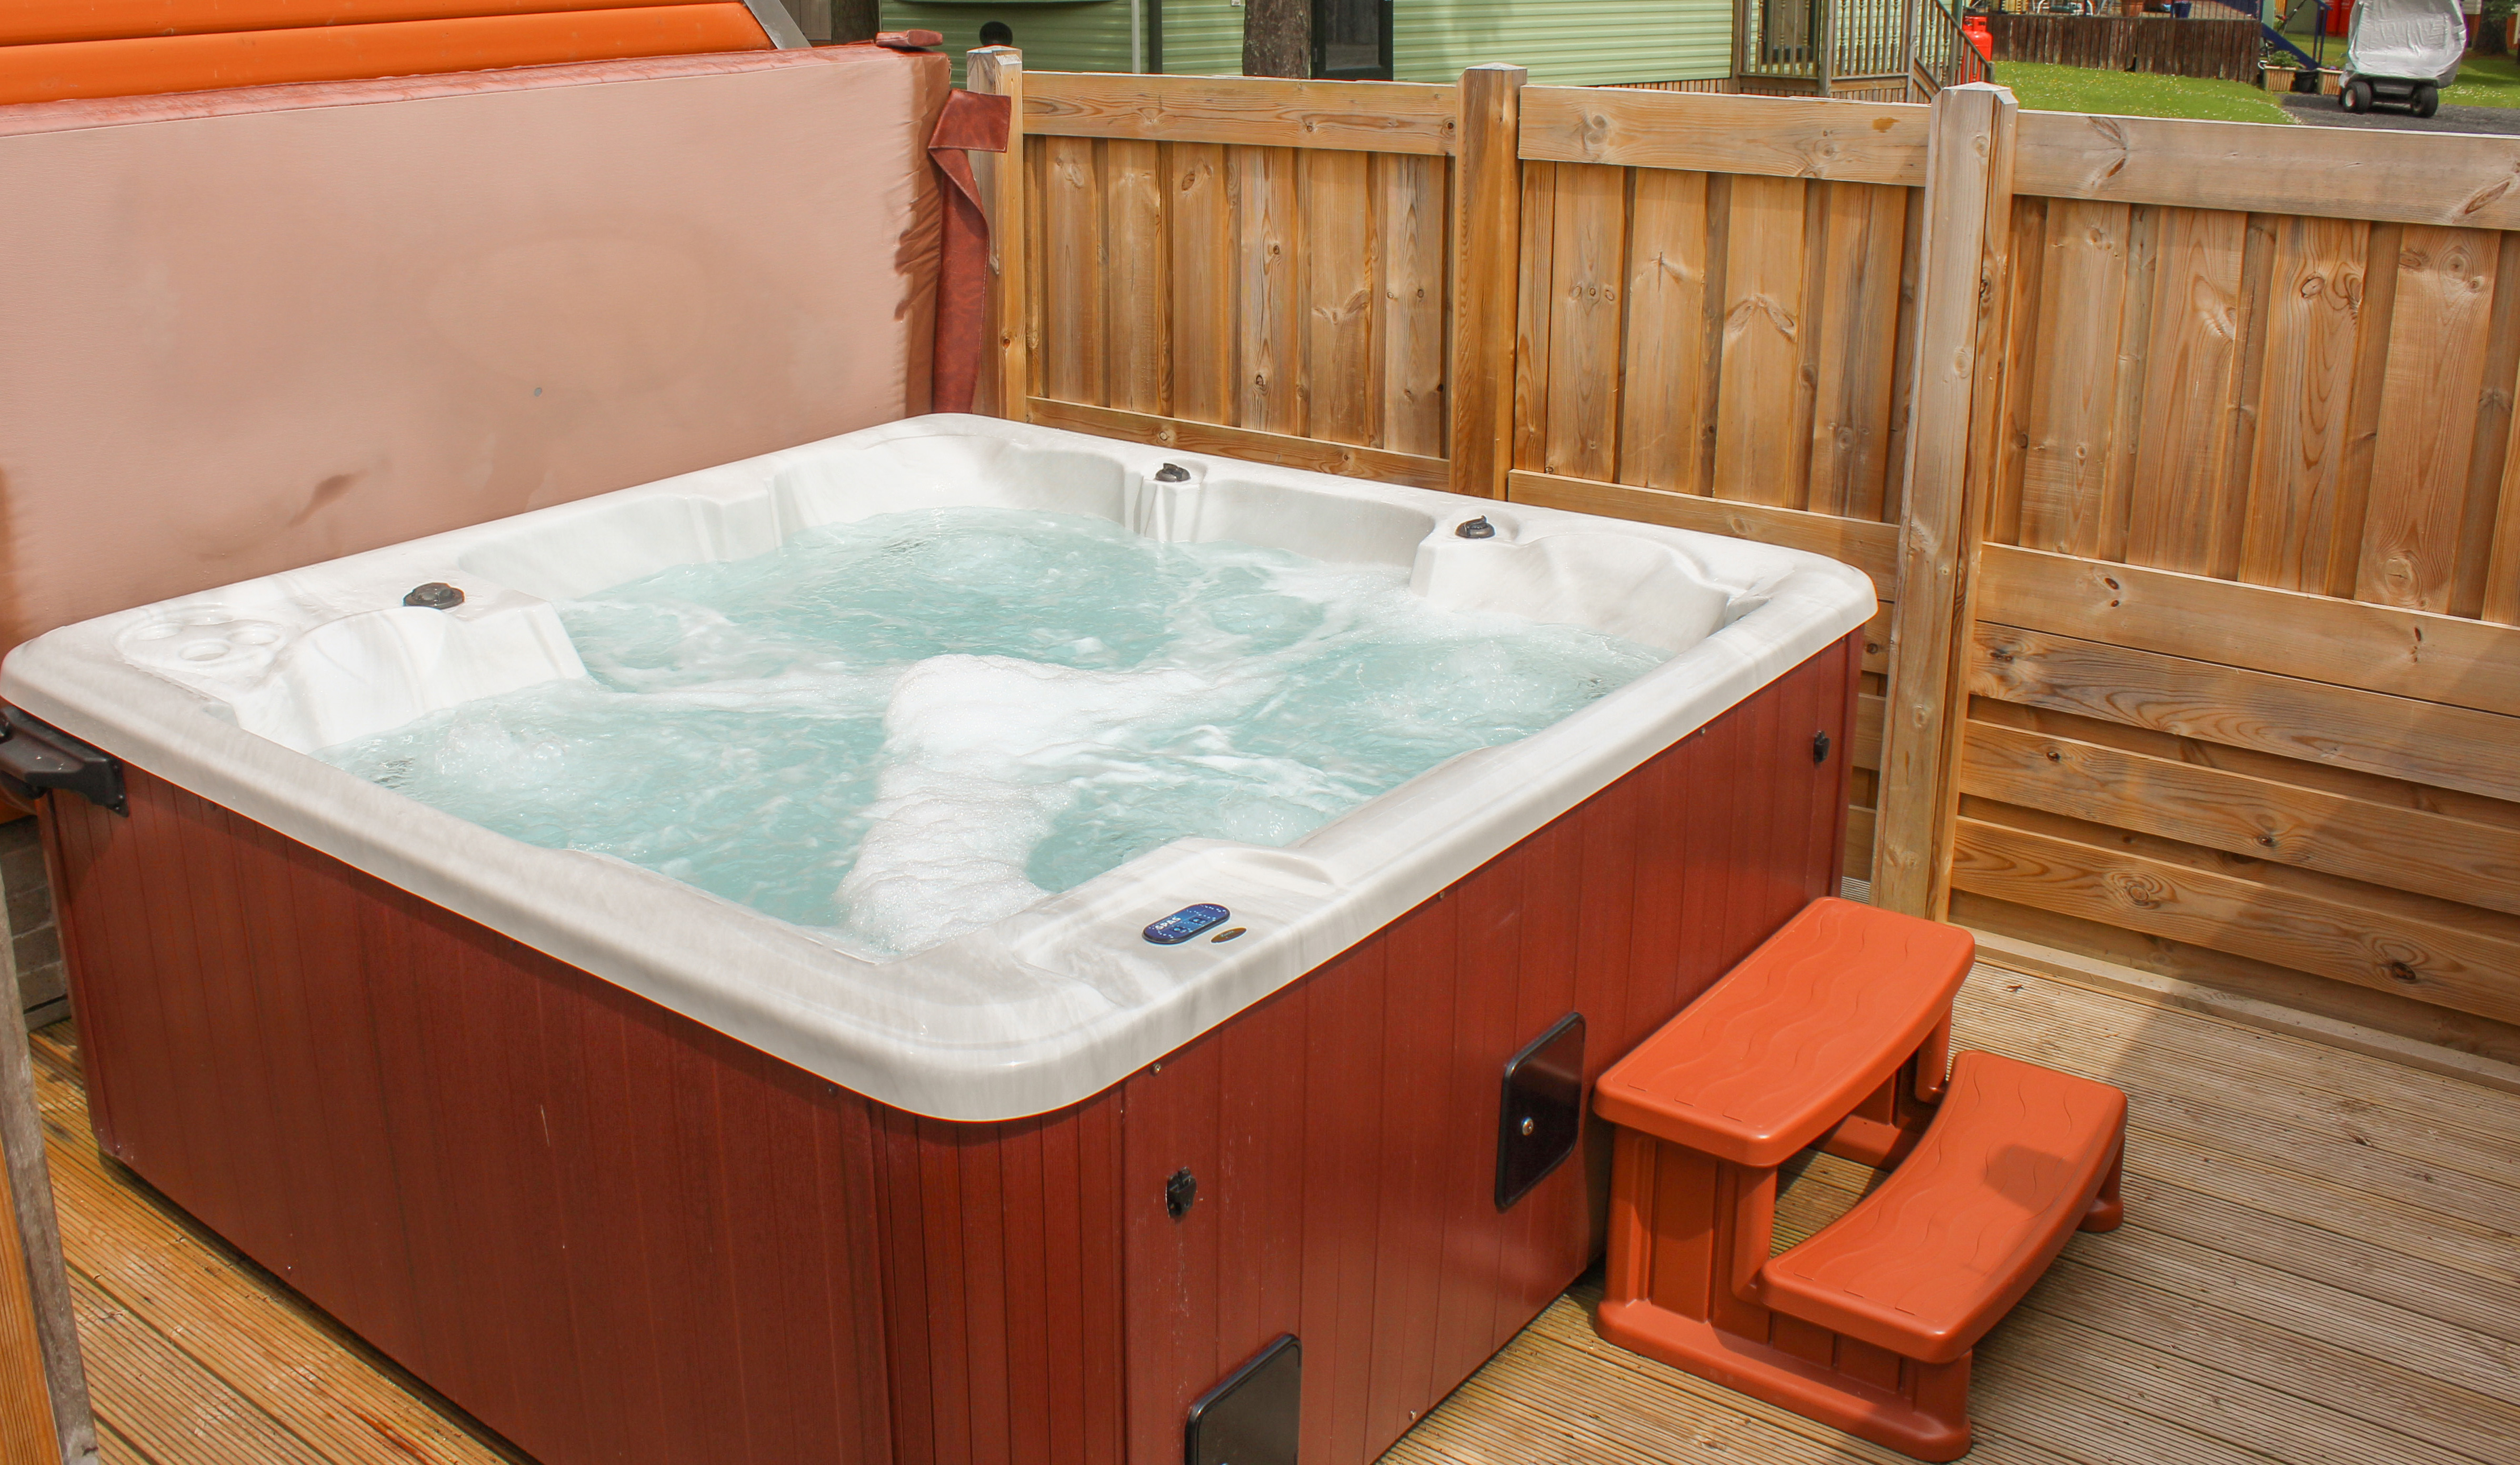 hot homes portable jacuzzi beautiful blueprints tub dma diy in ground